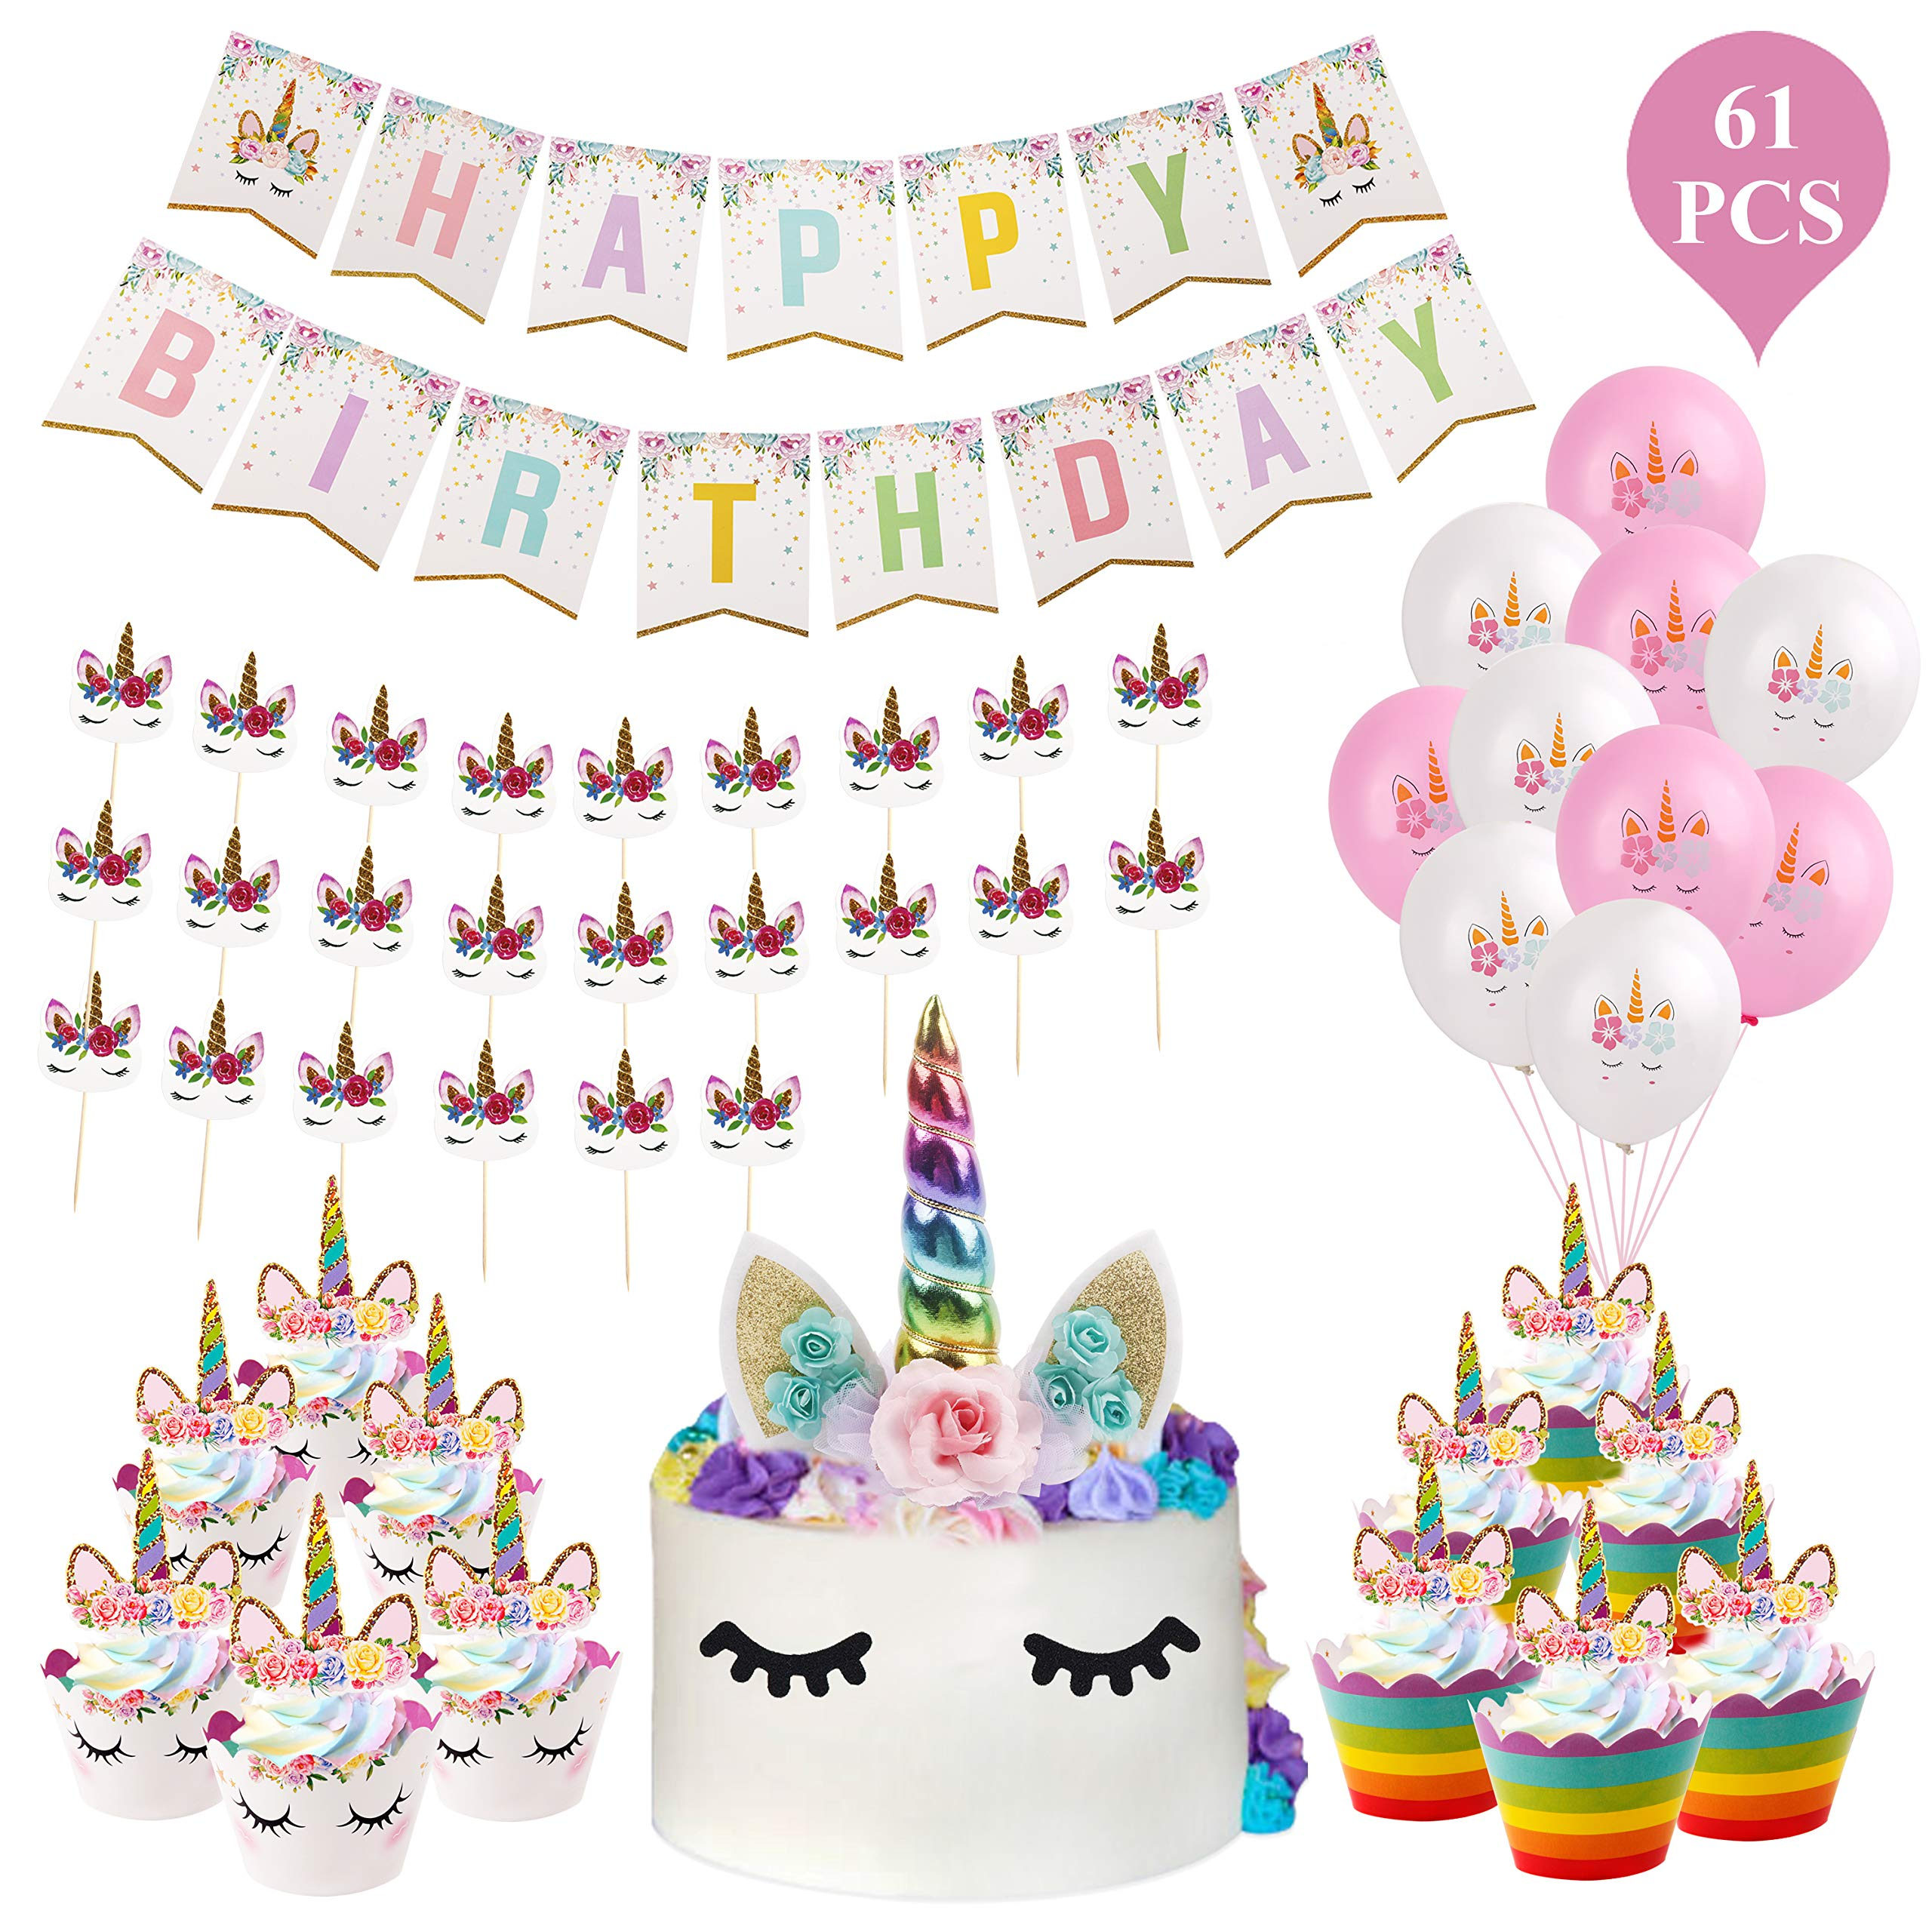 61Pcs Unicorn Cake Topper - Unicorn Horn Party Cake Decoration, Unicorn Cupcake Toppers, Unicorn Cupcake Wrappers, Banner, Unicorn Balloons for Birthday Party, Baby Shower (Unicorn Cake Topper) by QIFU (Image #1)